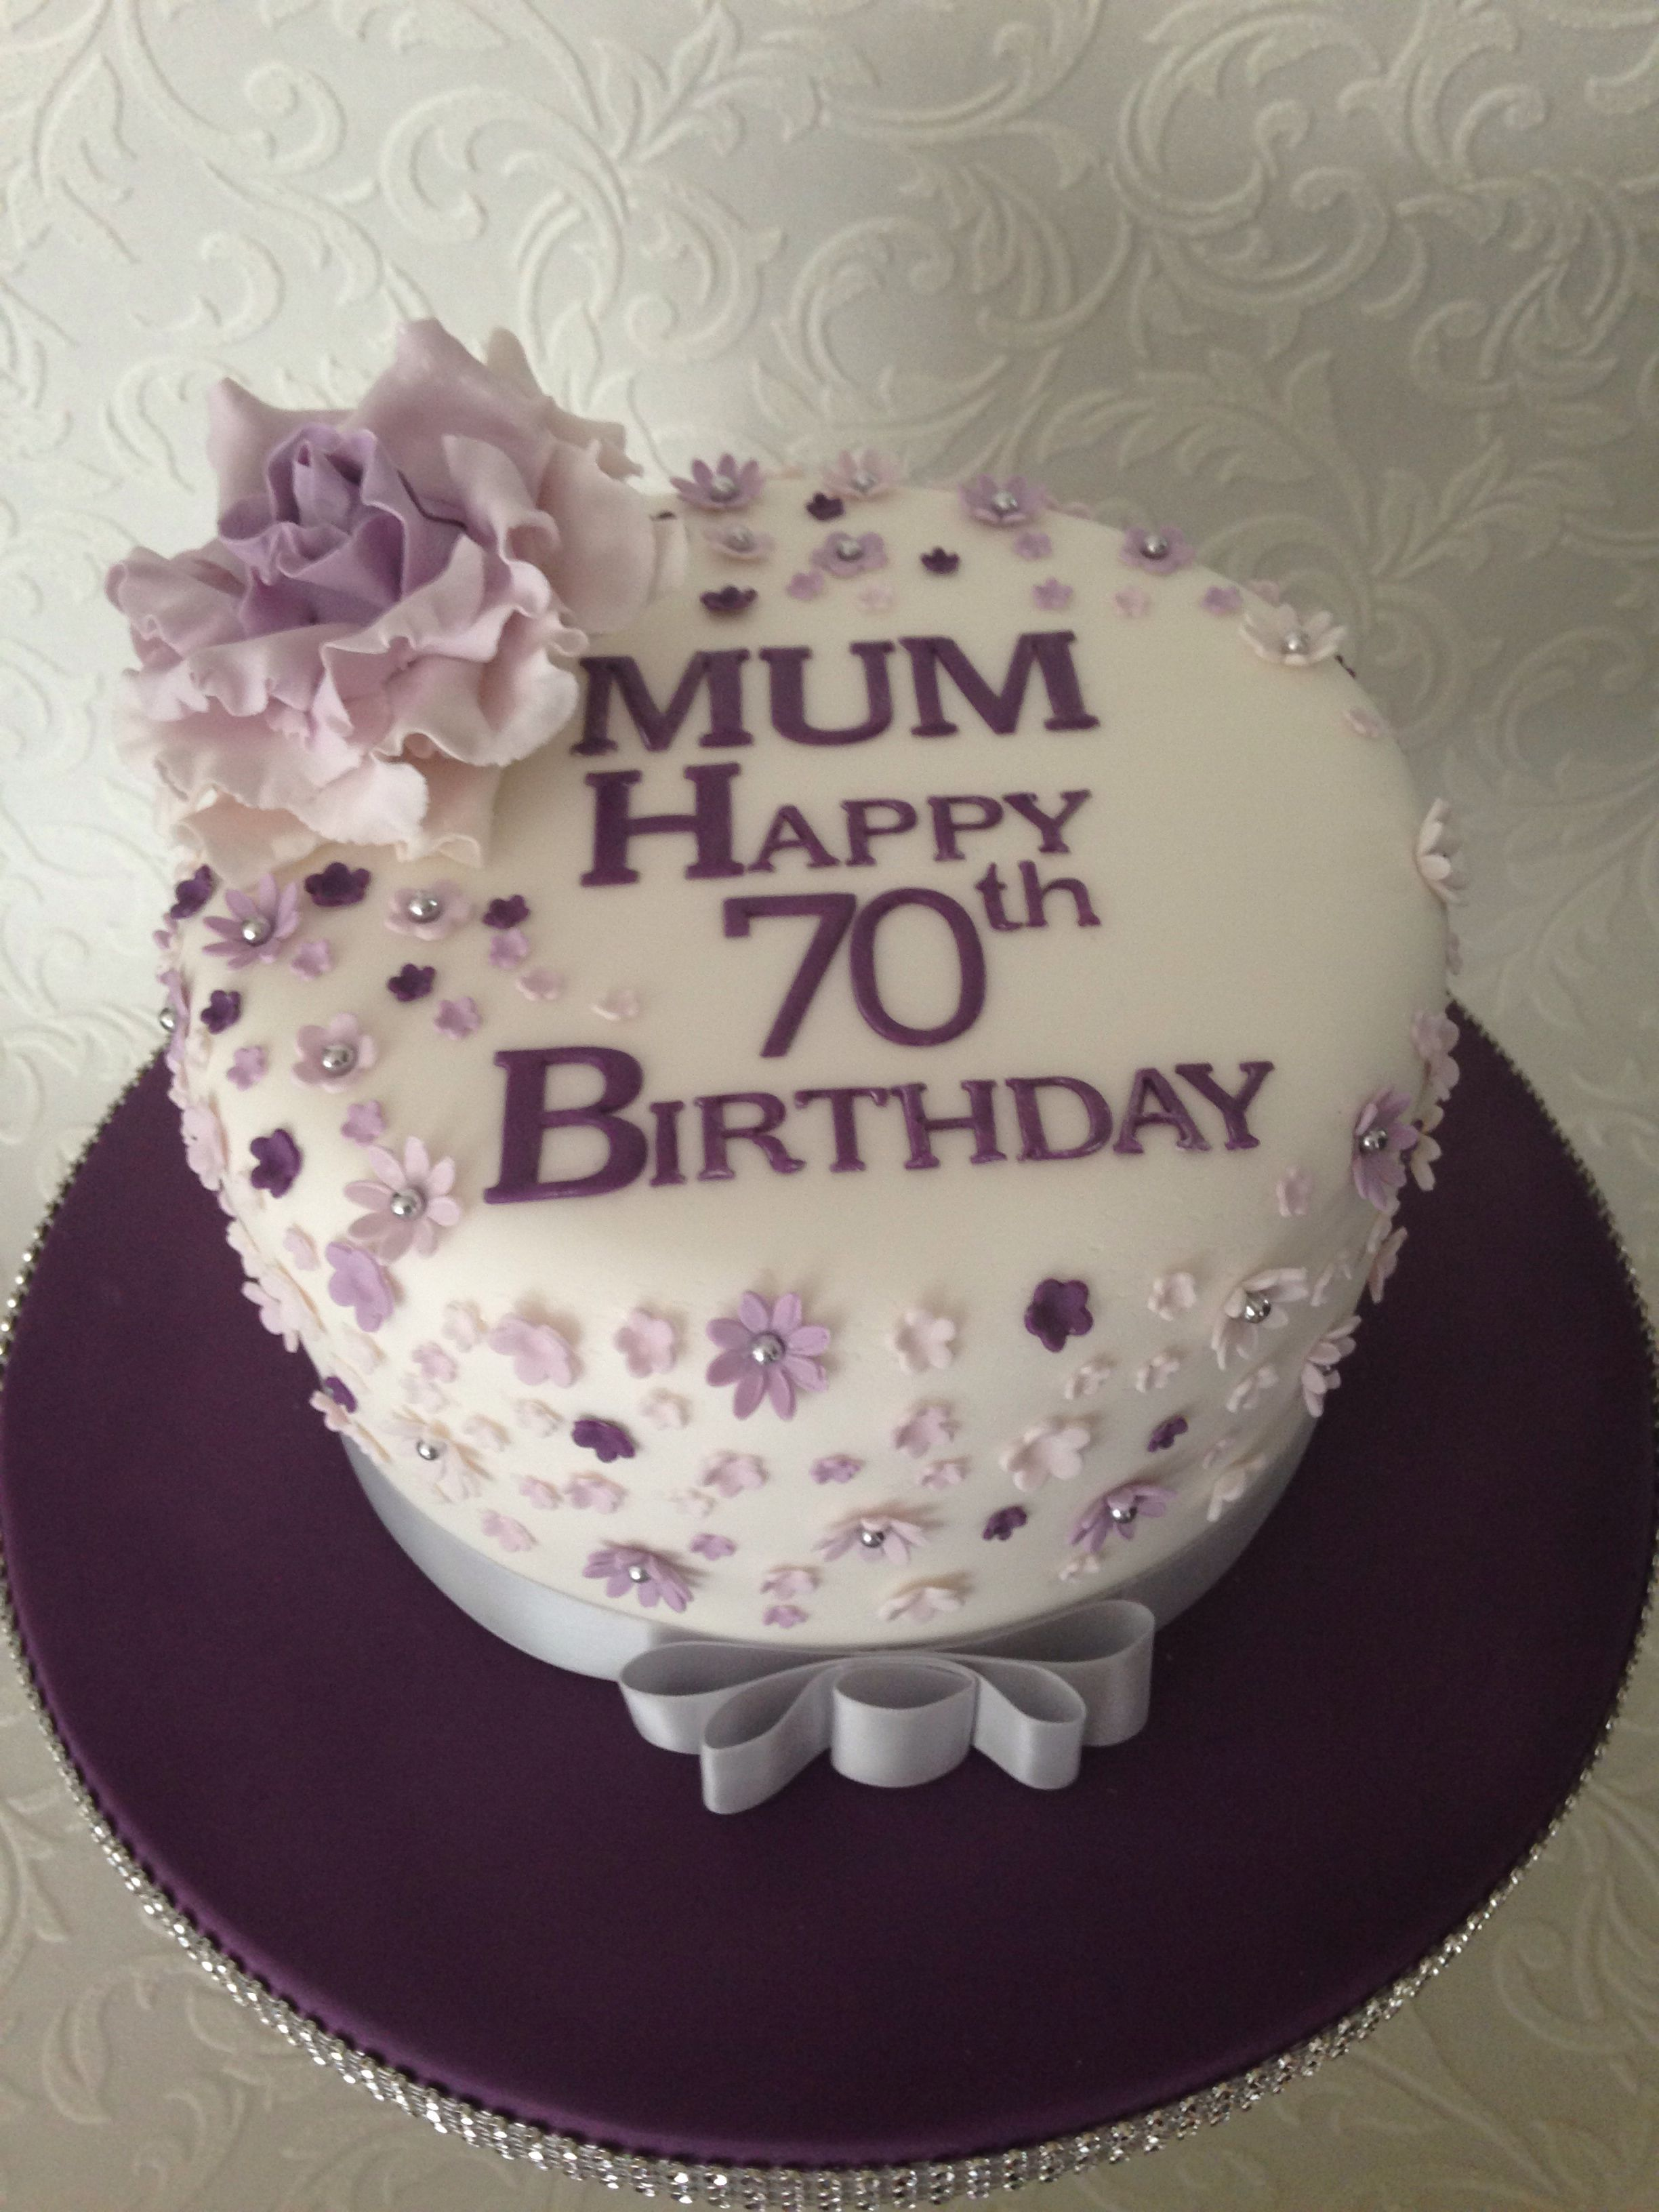 Cake Decorating Ideas 70th Birthday